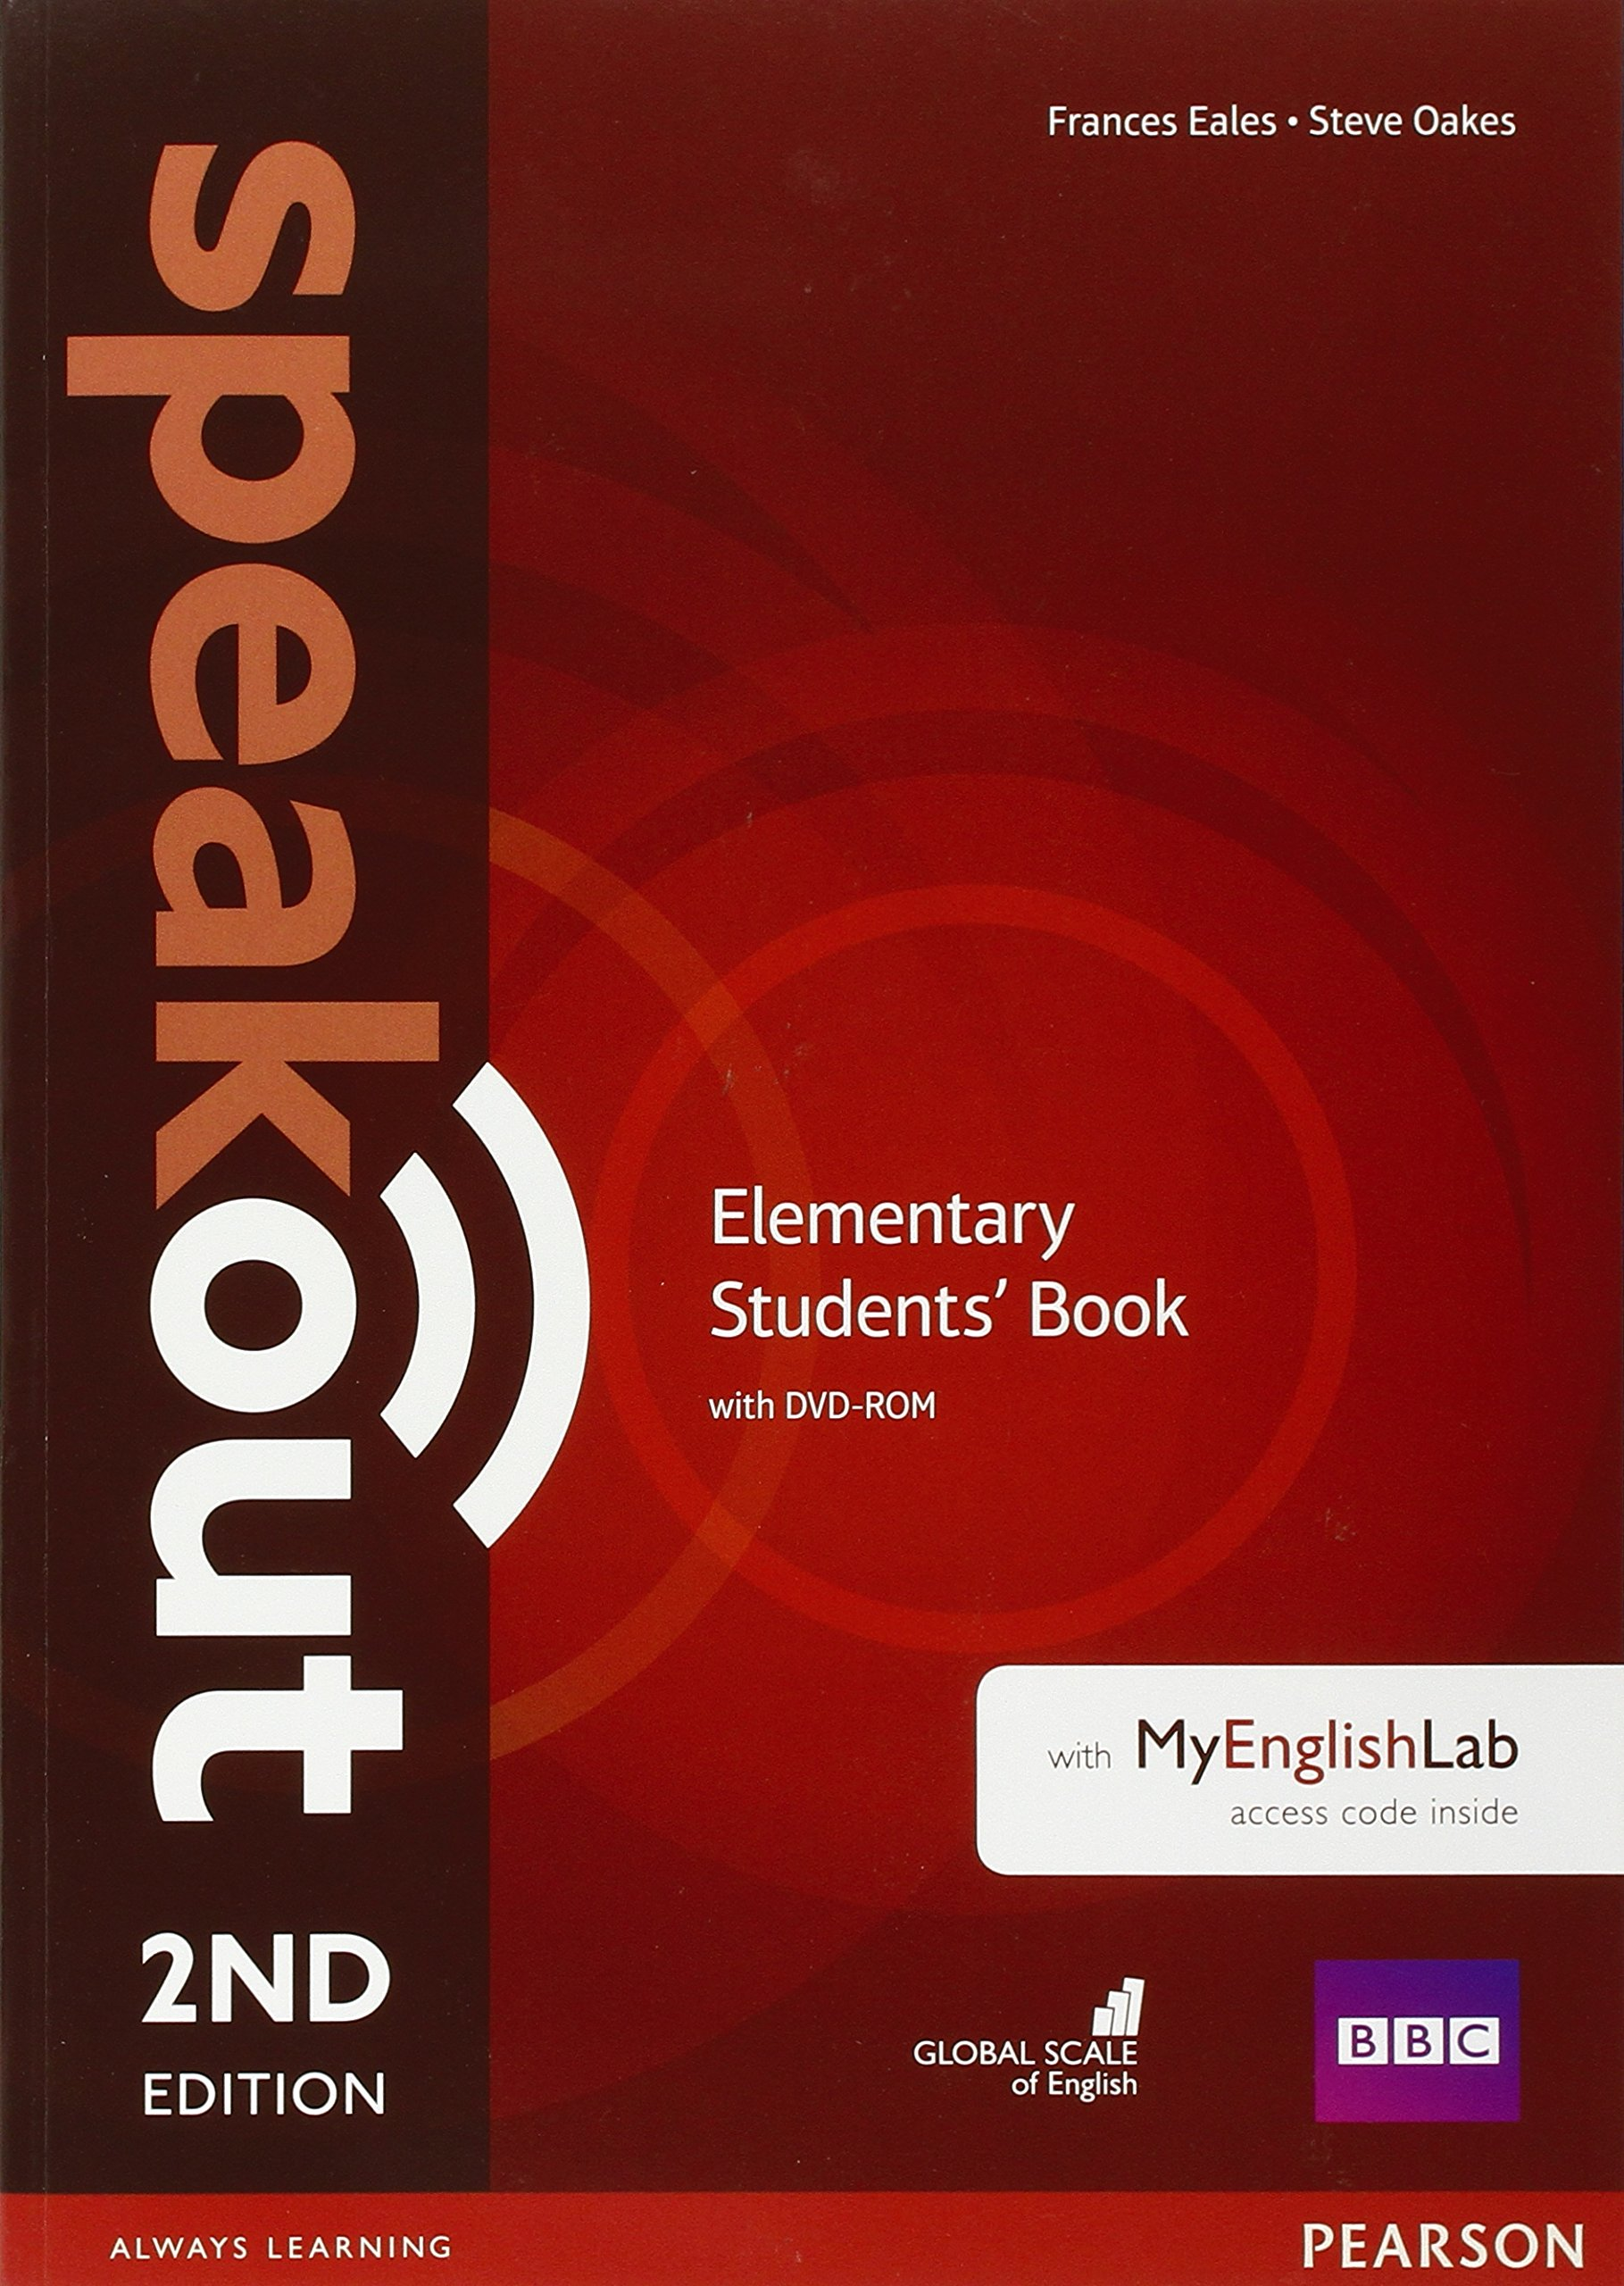 Speakout elementary 2nd edition students book with dvd rom and speakout elementary 2nd edition students book with dvd rom and myenglishlab access code pack antonia clare j j wilson frances eales steve oakes fandeluxe Images